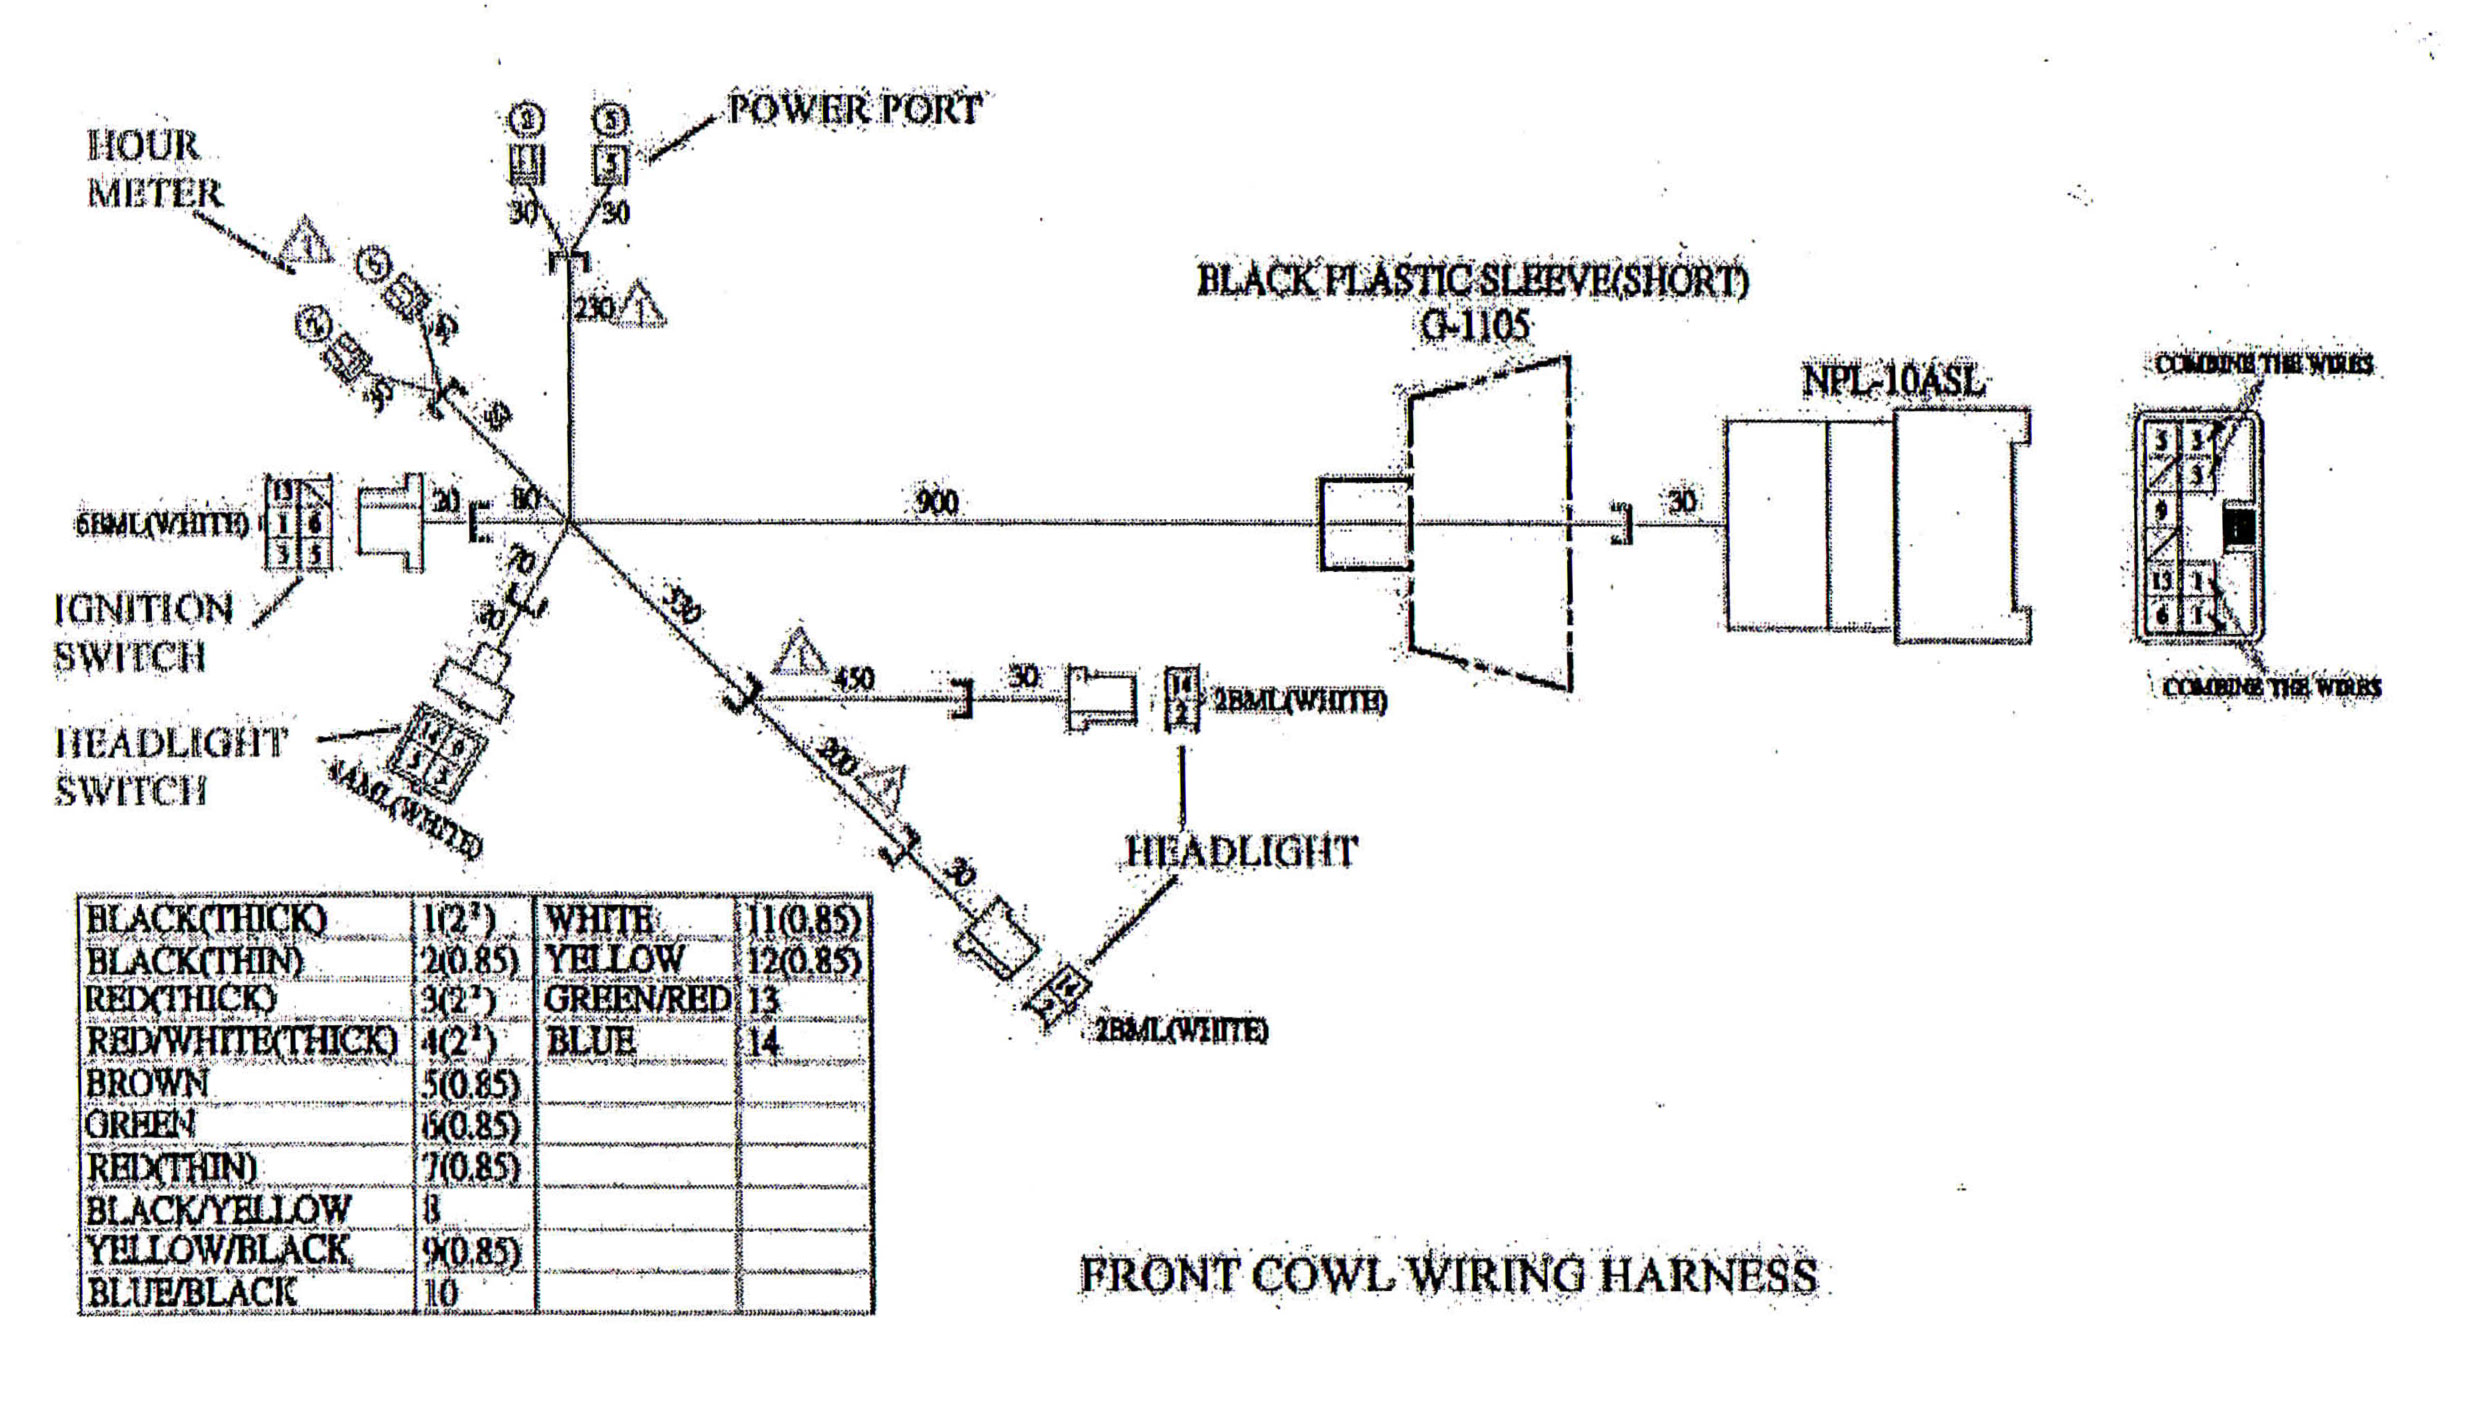 Carter 150 Wiring Diagram For Yerf Dog Kart - 17.njk.naturheilpraxis on husaberg wiring diagram, norton wiring diagram, garelli wiring diagram, ossa wiring diagram, kawasaki wiring diagram, phantom wiring diagram, alpha sports wiring diagram, yamaha wiring diagram, kymco wiring diagram, motofino wiring diagram, dinli wiring diagram, motor trike wiring diagram, royal ryder wiring diagram, kazuma wiring diagram, vespa wiring diagram, suzuki wiring diagram, ural wiring diagram, smc wiring diagram, lifan wiring diagram, tomos wiring diagram,